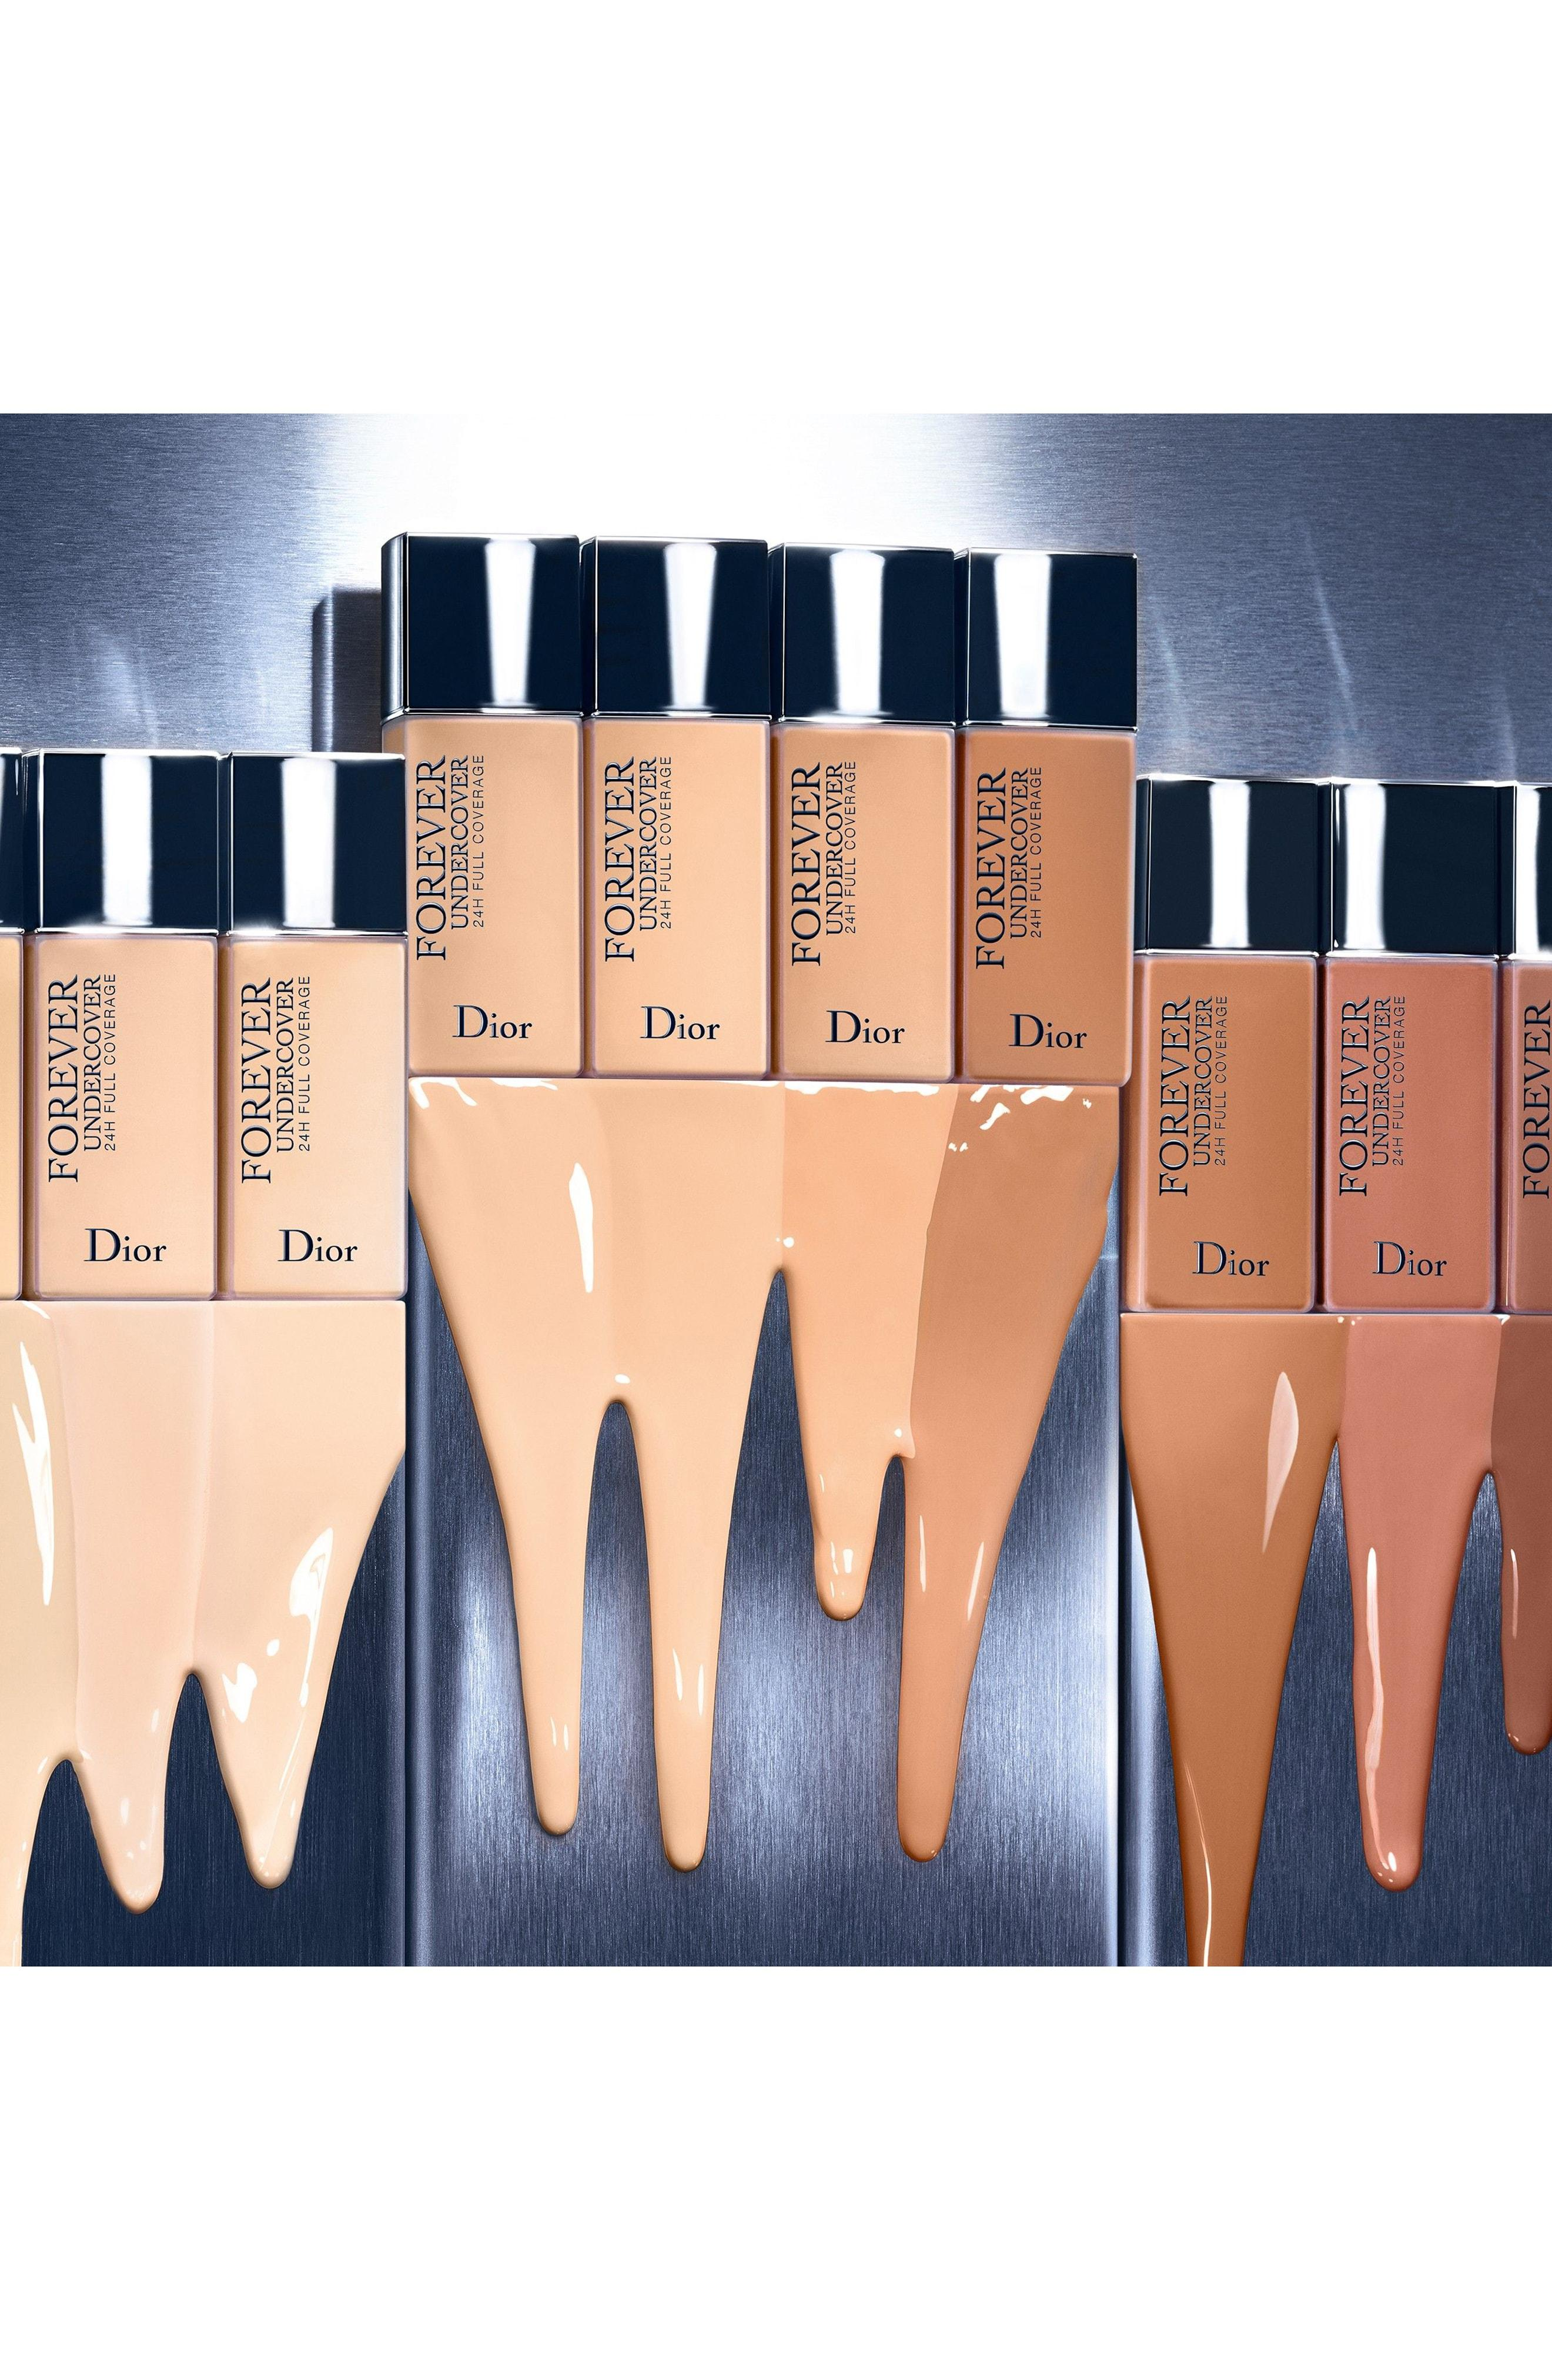 DIOR Diorskin Forever Undercover 24-Hour Full Coverage Liquid Foundation,C000900015